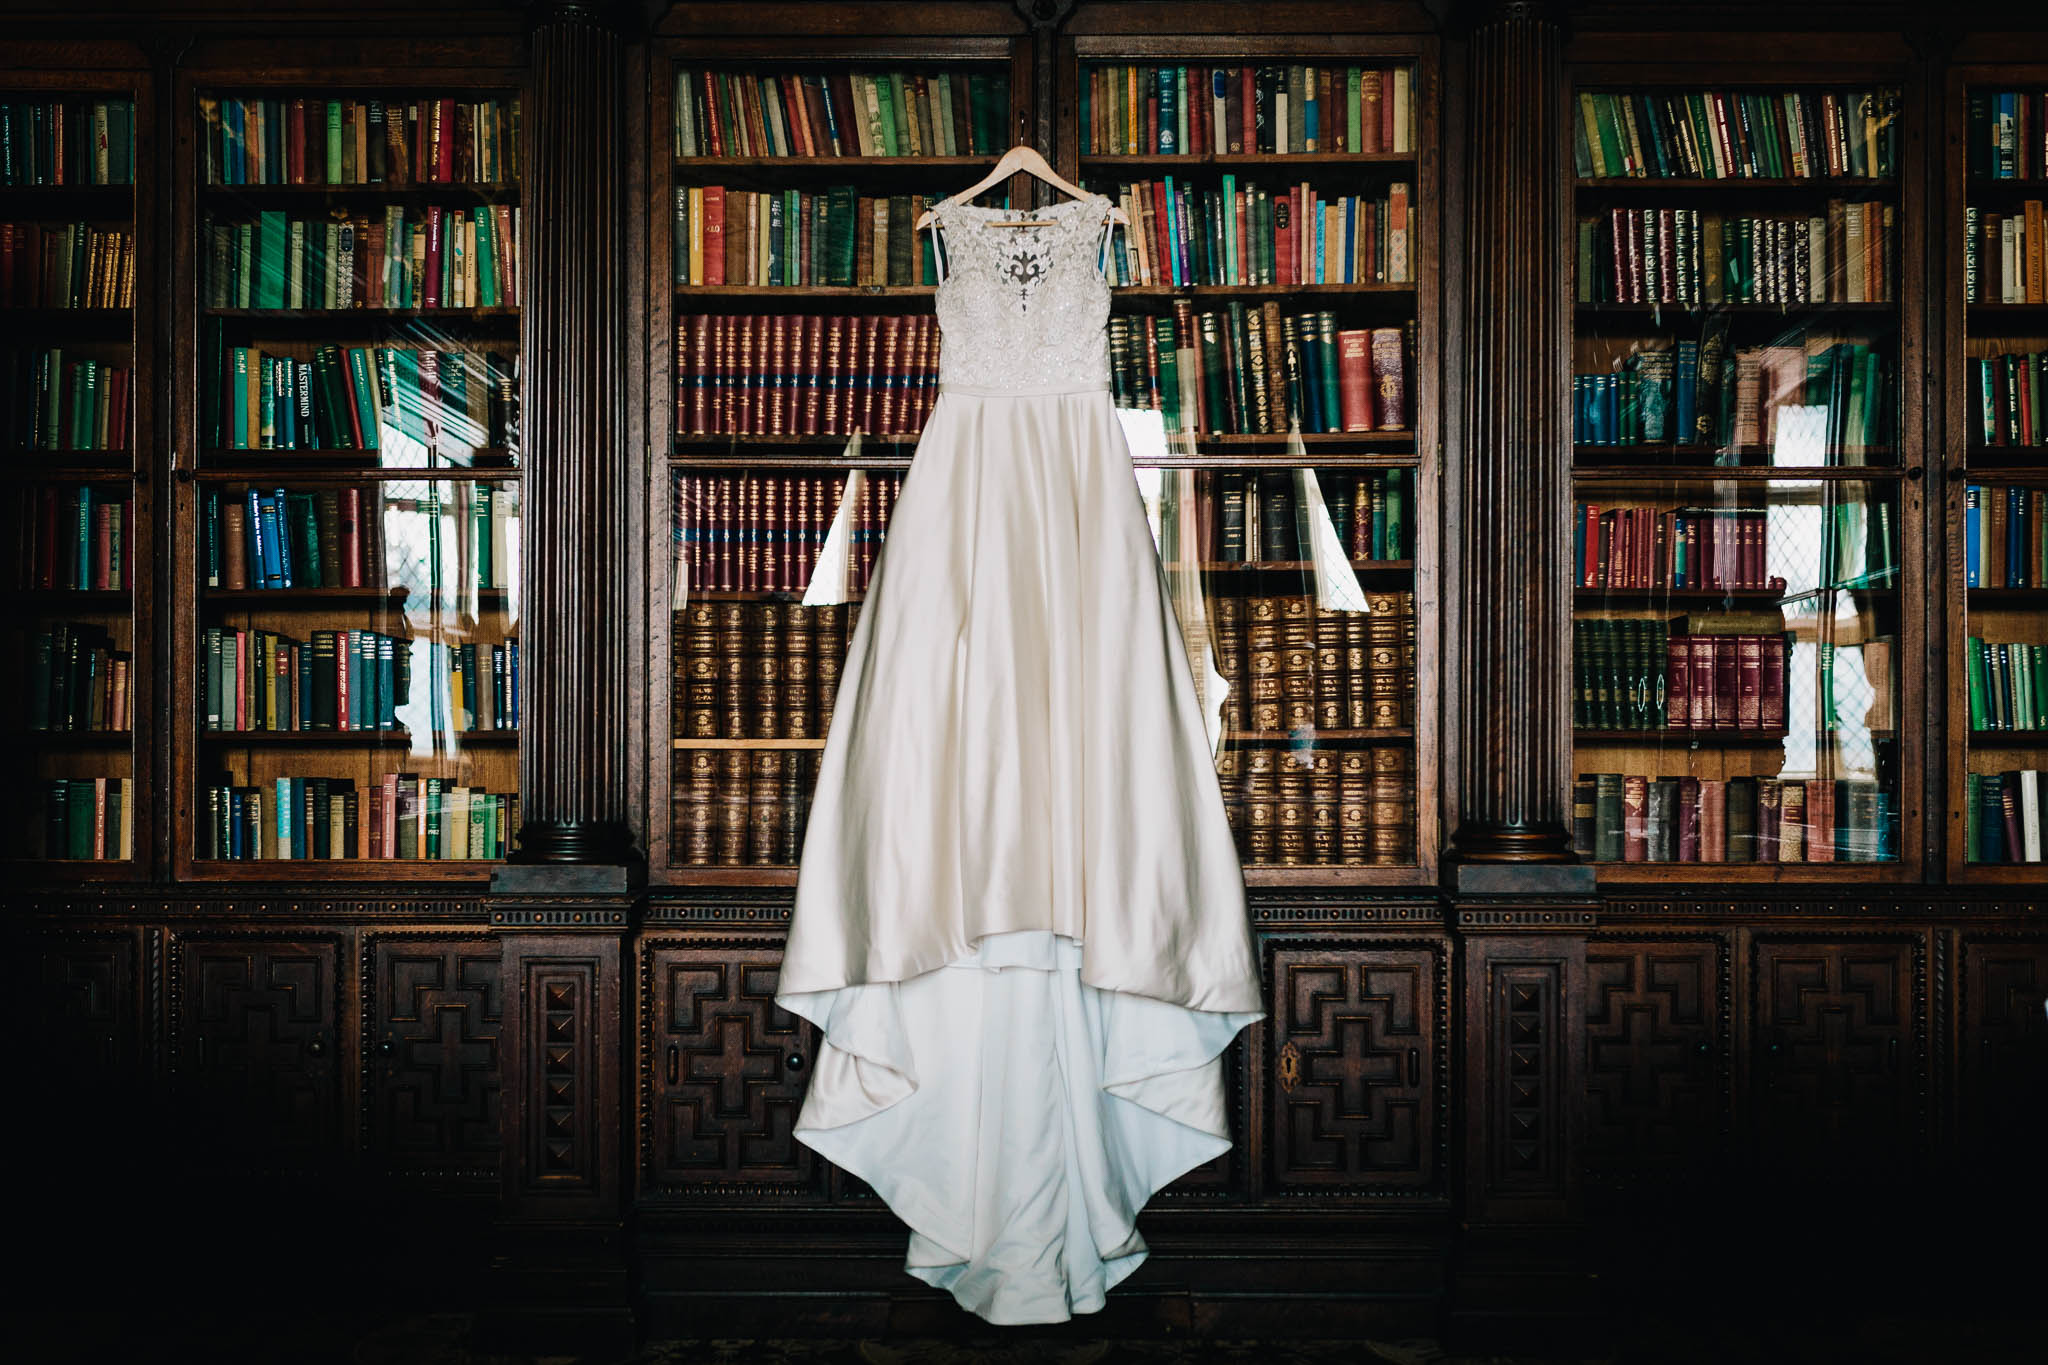 WEDDING DRESS HANGING IN THE GREAT LIBRARY AT HOGWARTS OR CREWE HALL